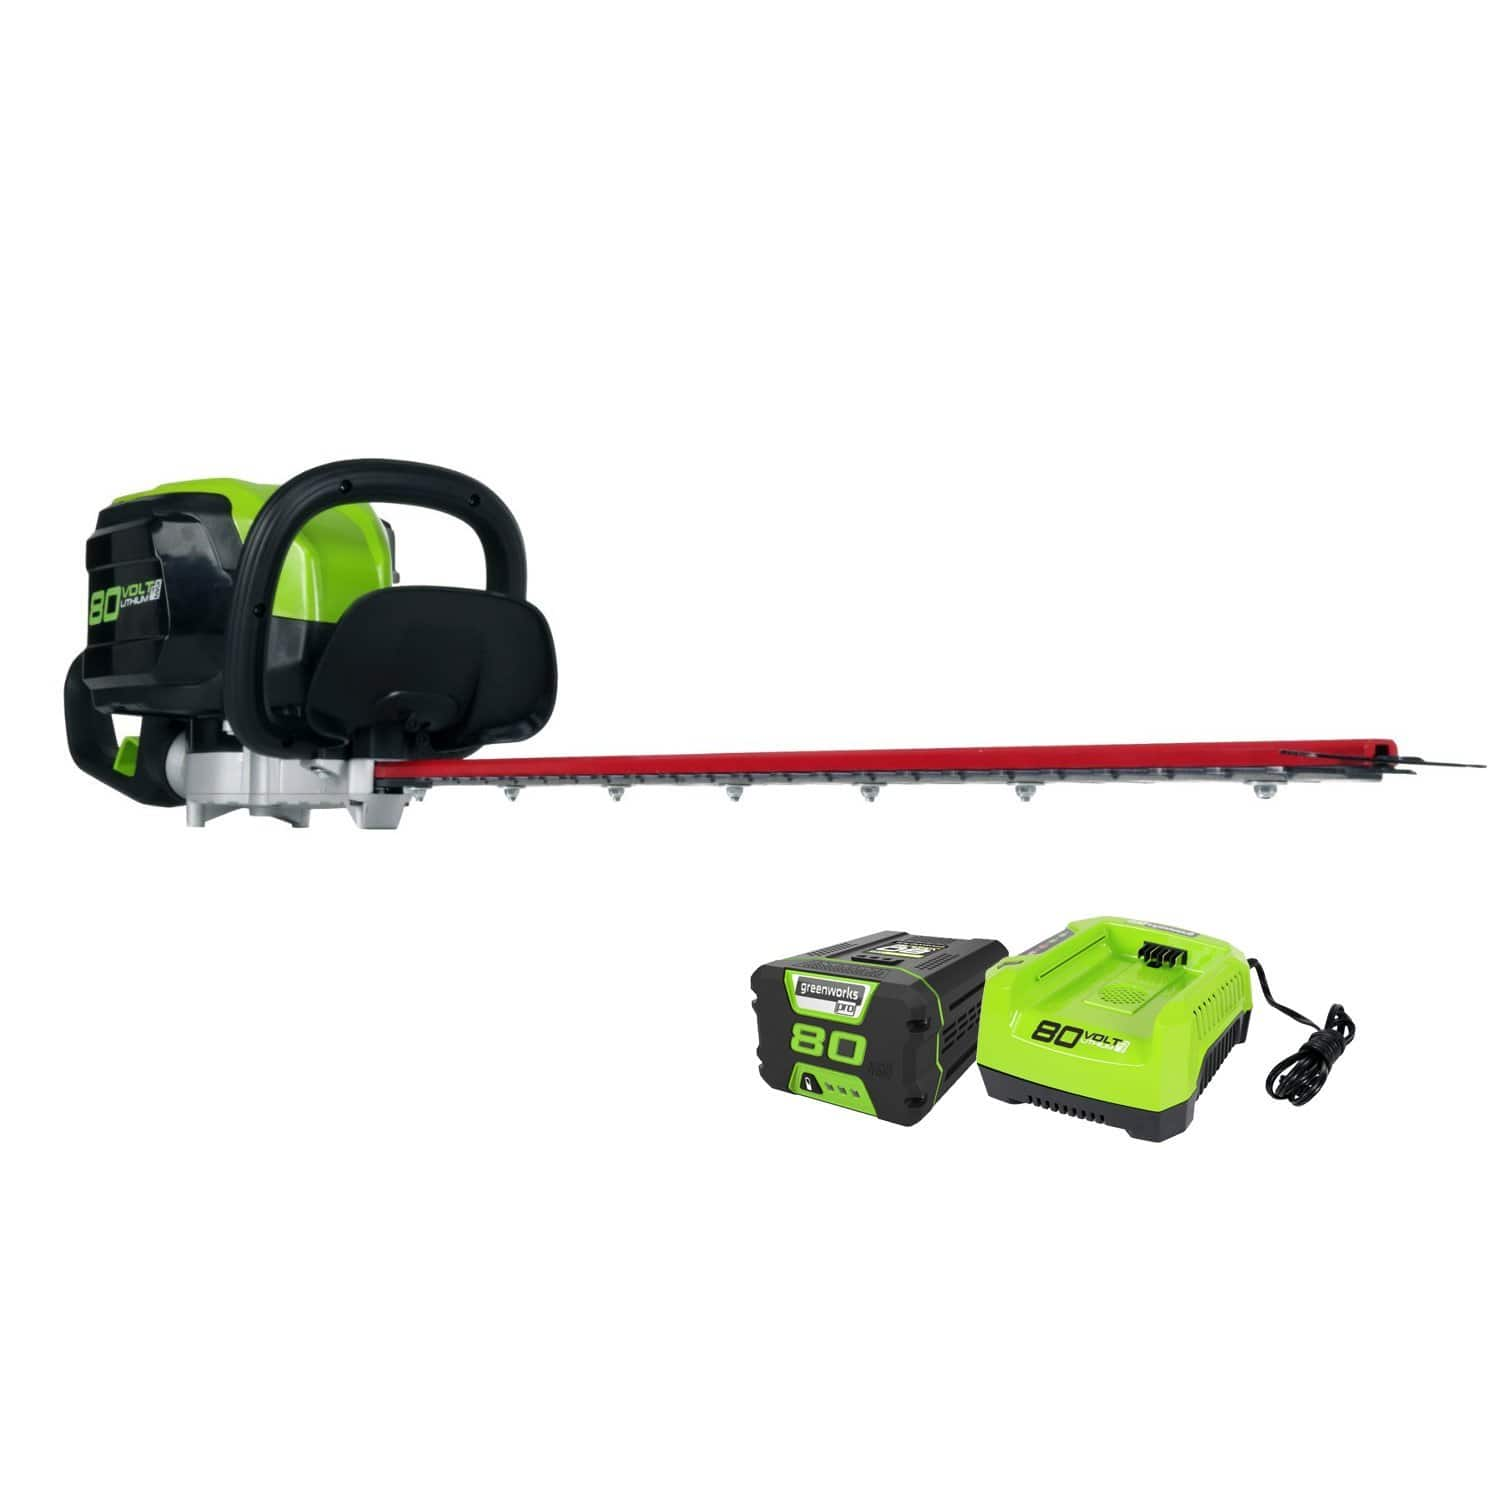 "Greenworks PRO 26-Inch 80V Cordless Hedge Trimmer, 2.0 AH Battery Included GHT80321 [26"" Battery Included] $161.81"